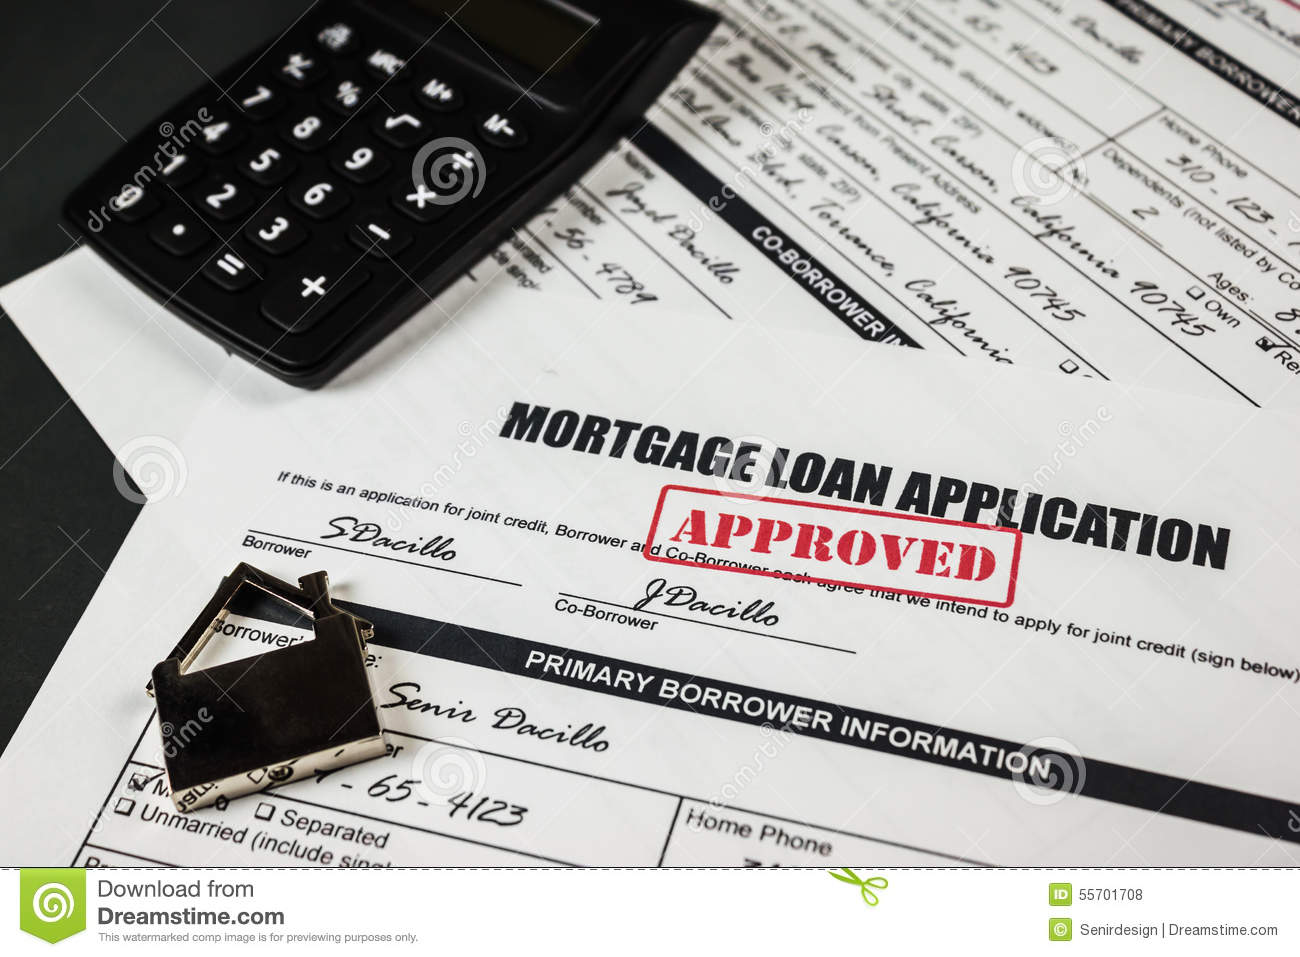 mortgage loan application approved 013 stock photo image of agreed